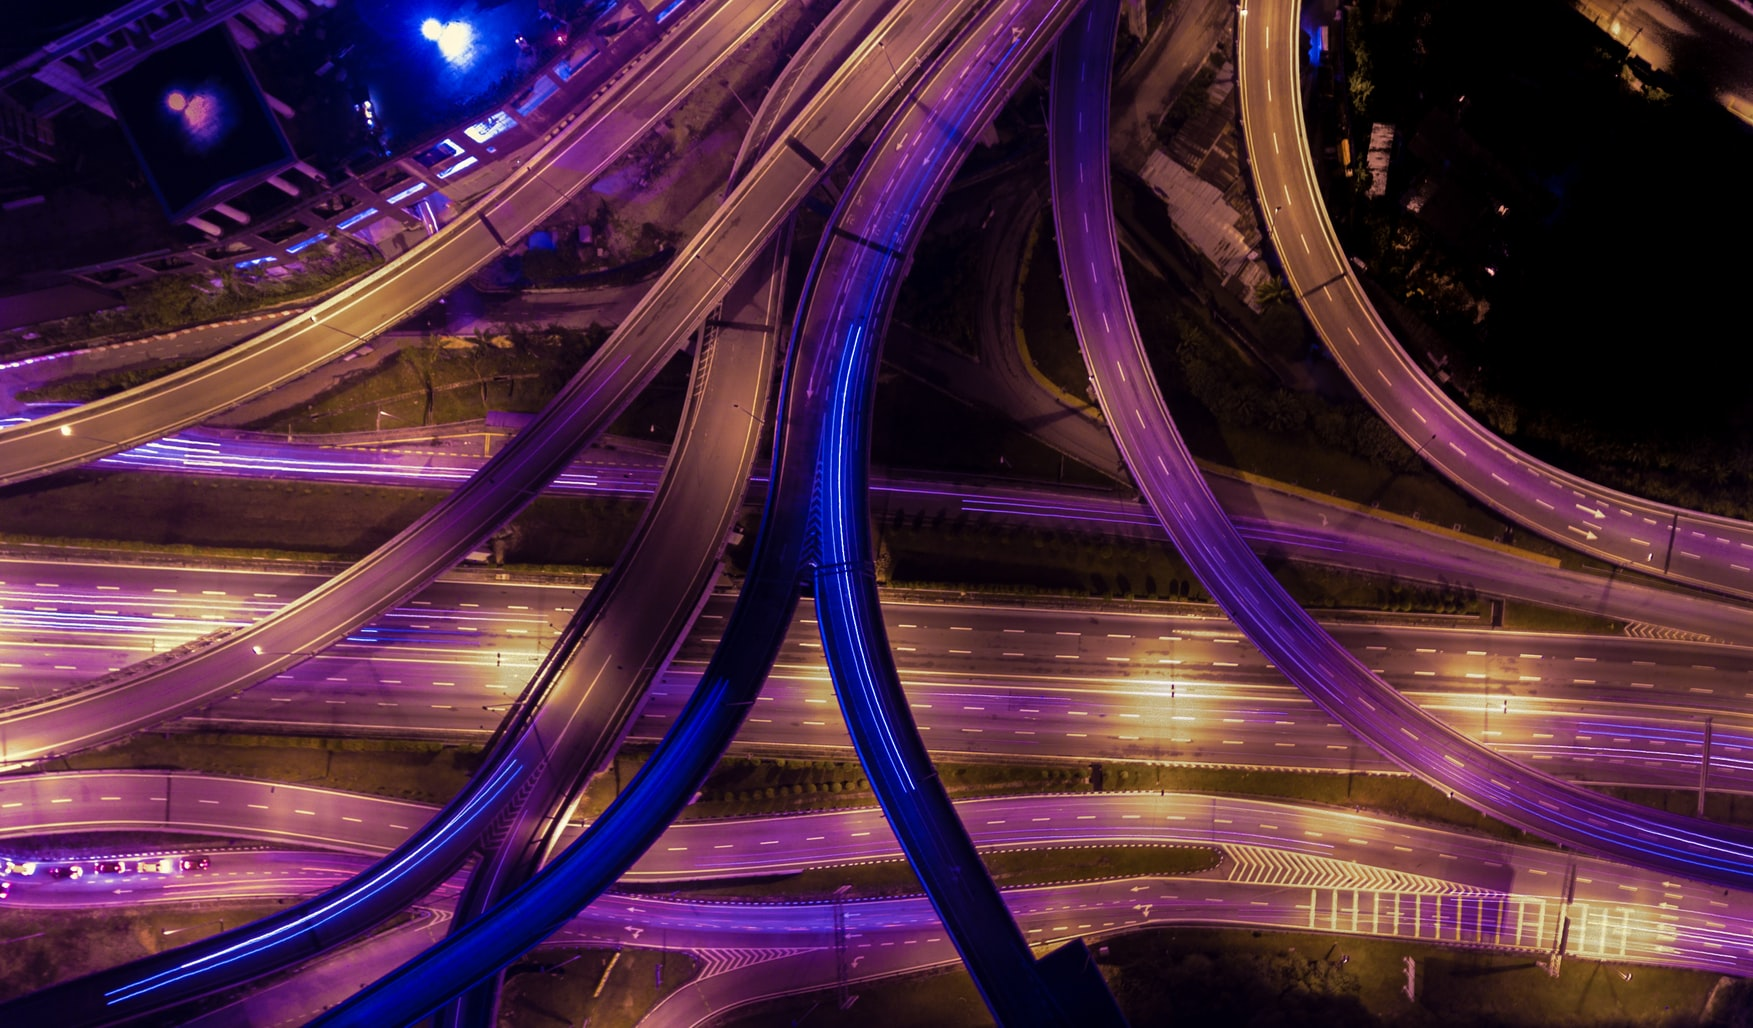 Aerial photography of colorful roads and highways merging during nighttime